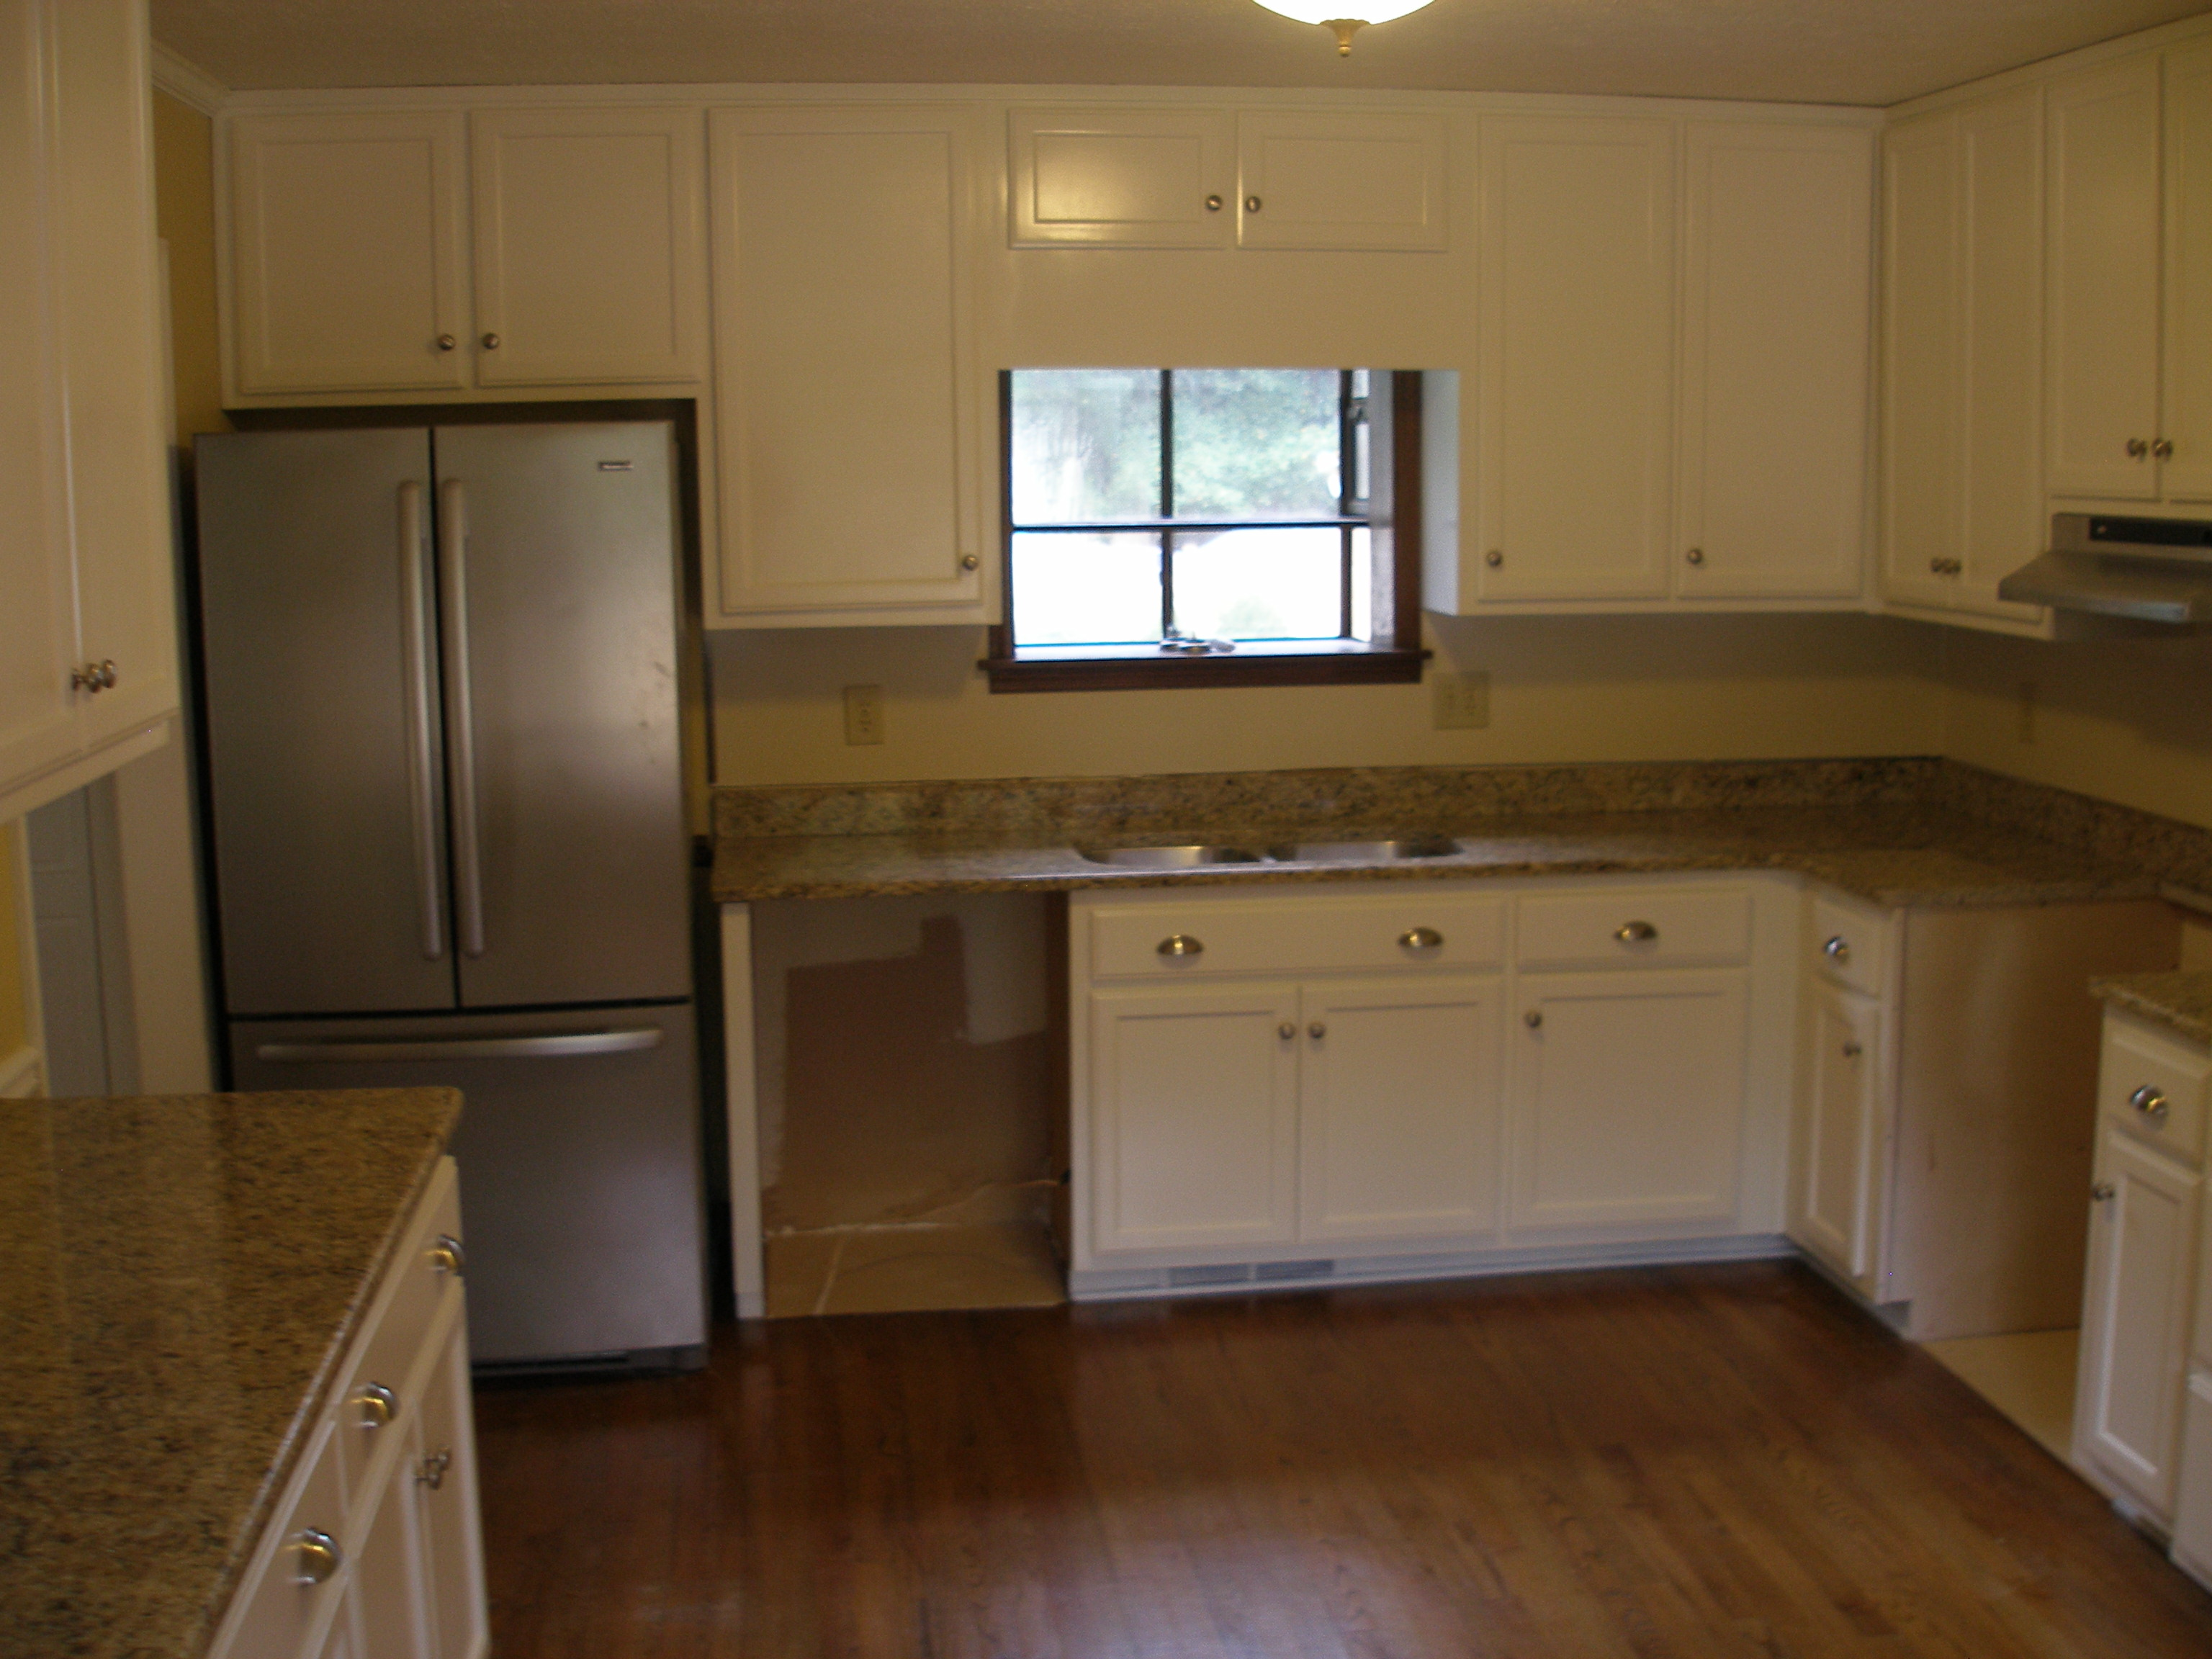 Refacing kitchen cabinets in atlanta ga - Olympus Digital Camera Clark S Cabinet Shop